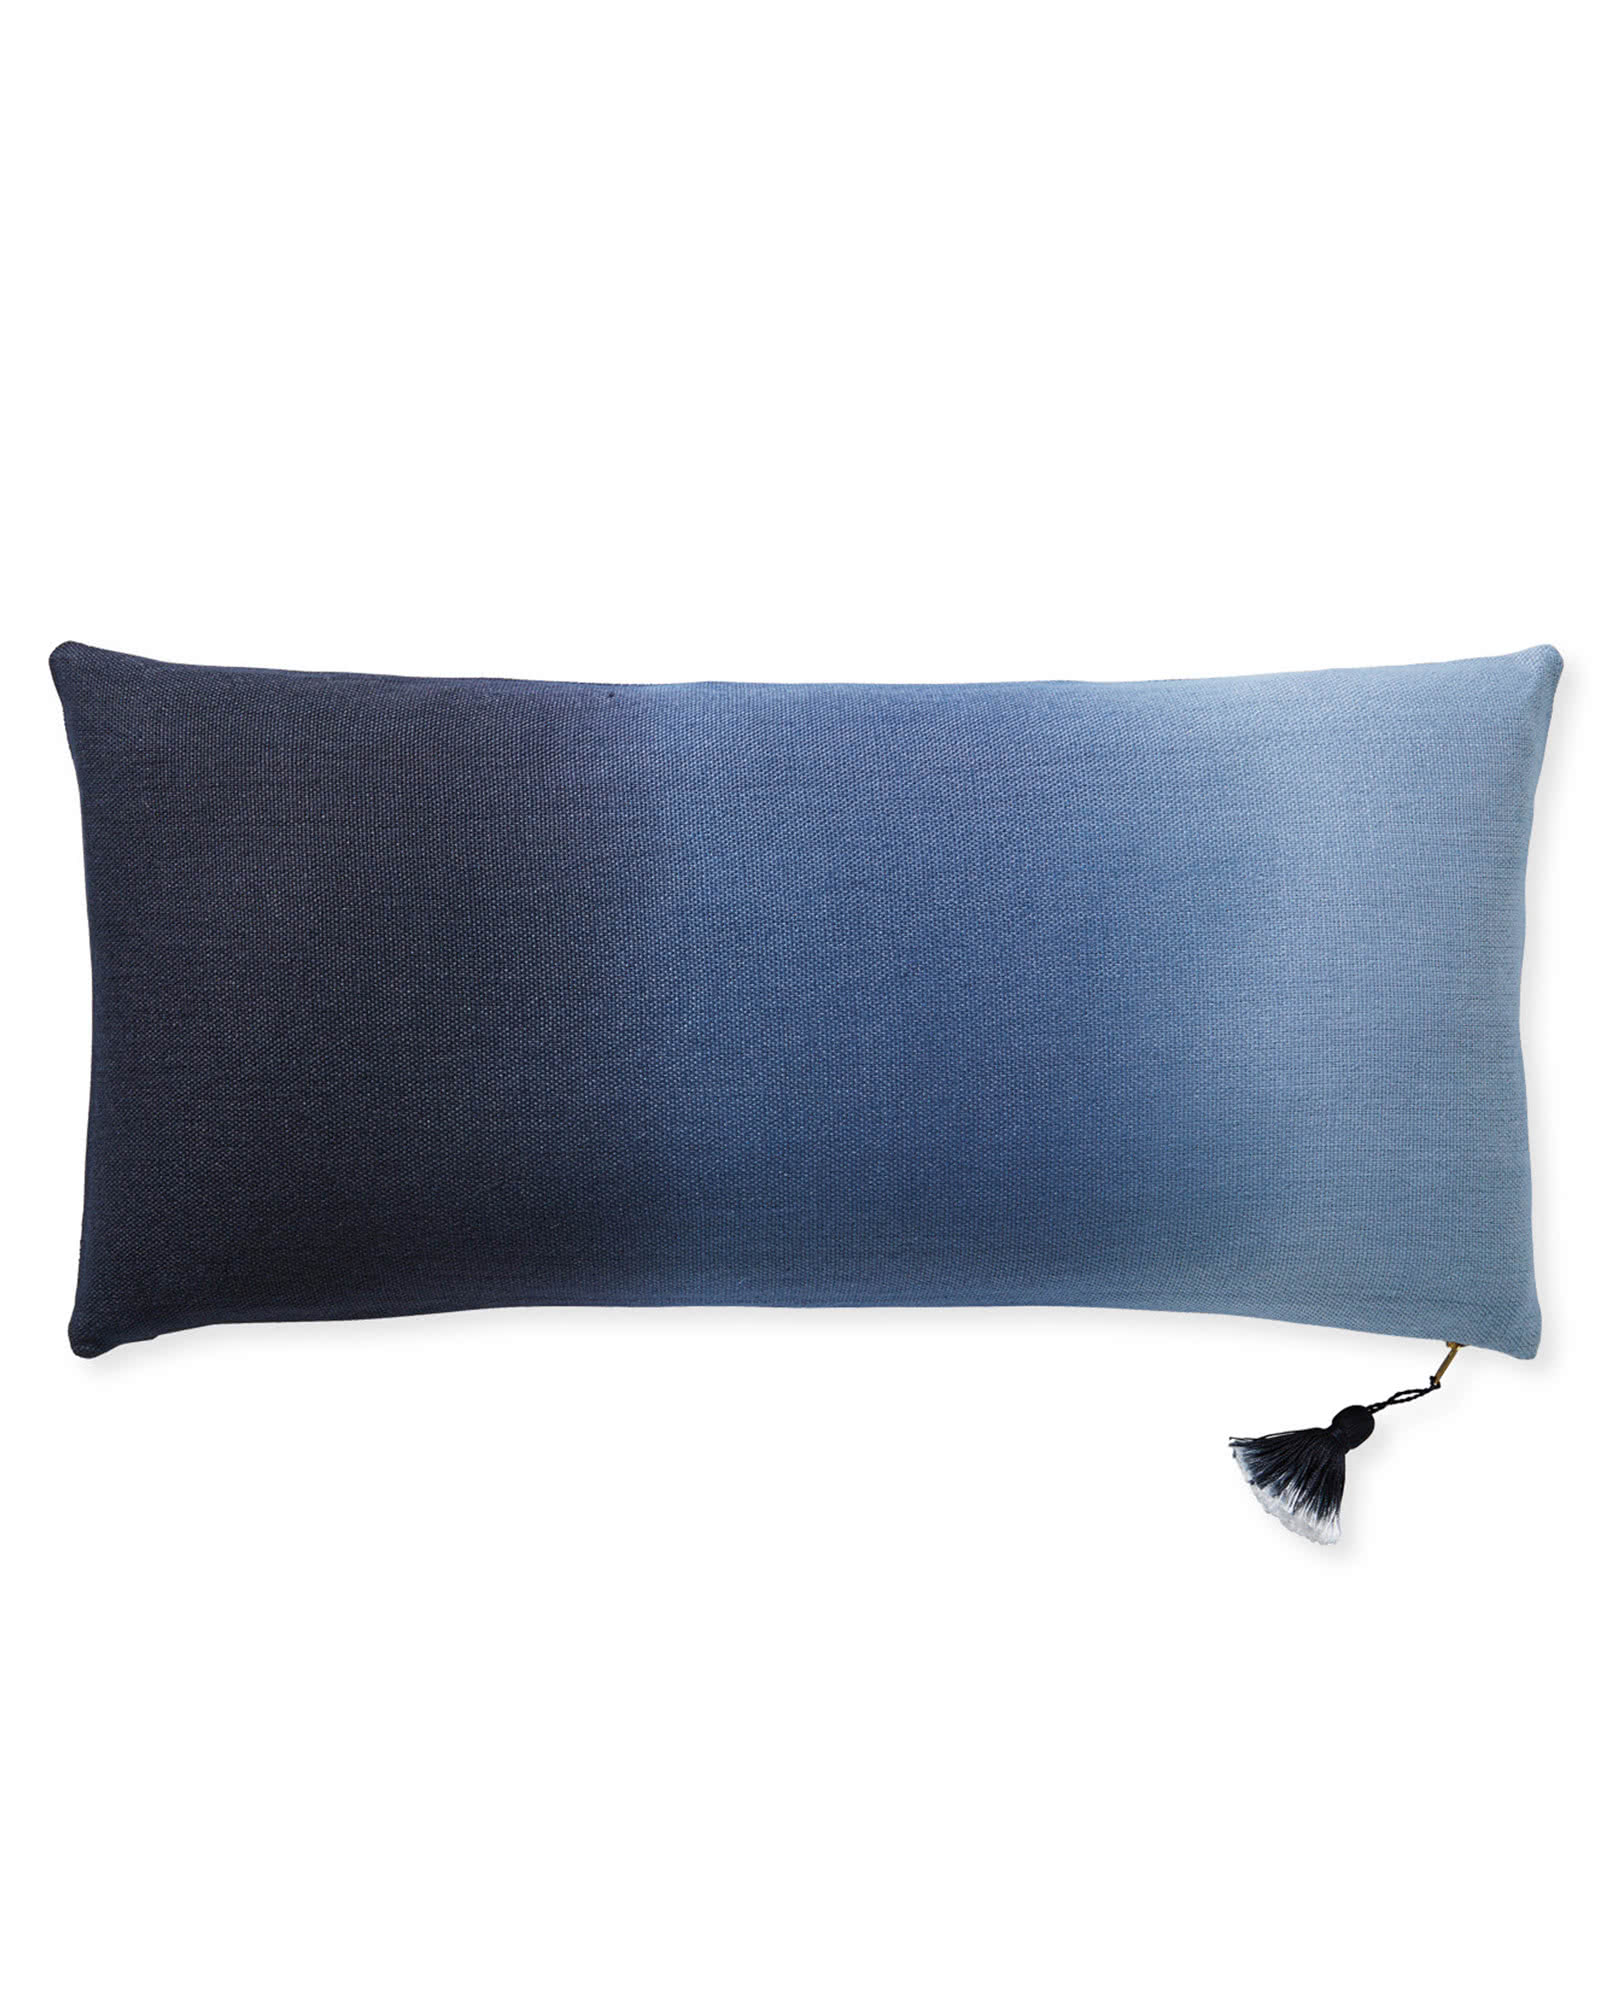 Dip Dye Pillow Cover,